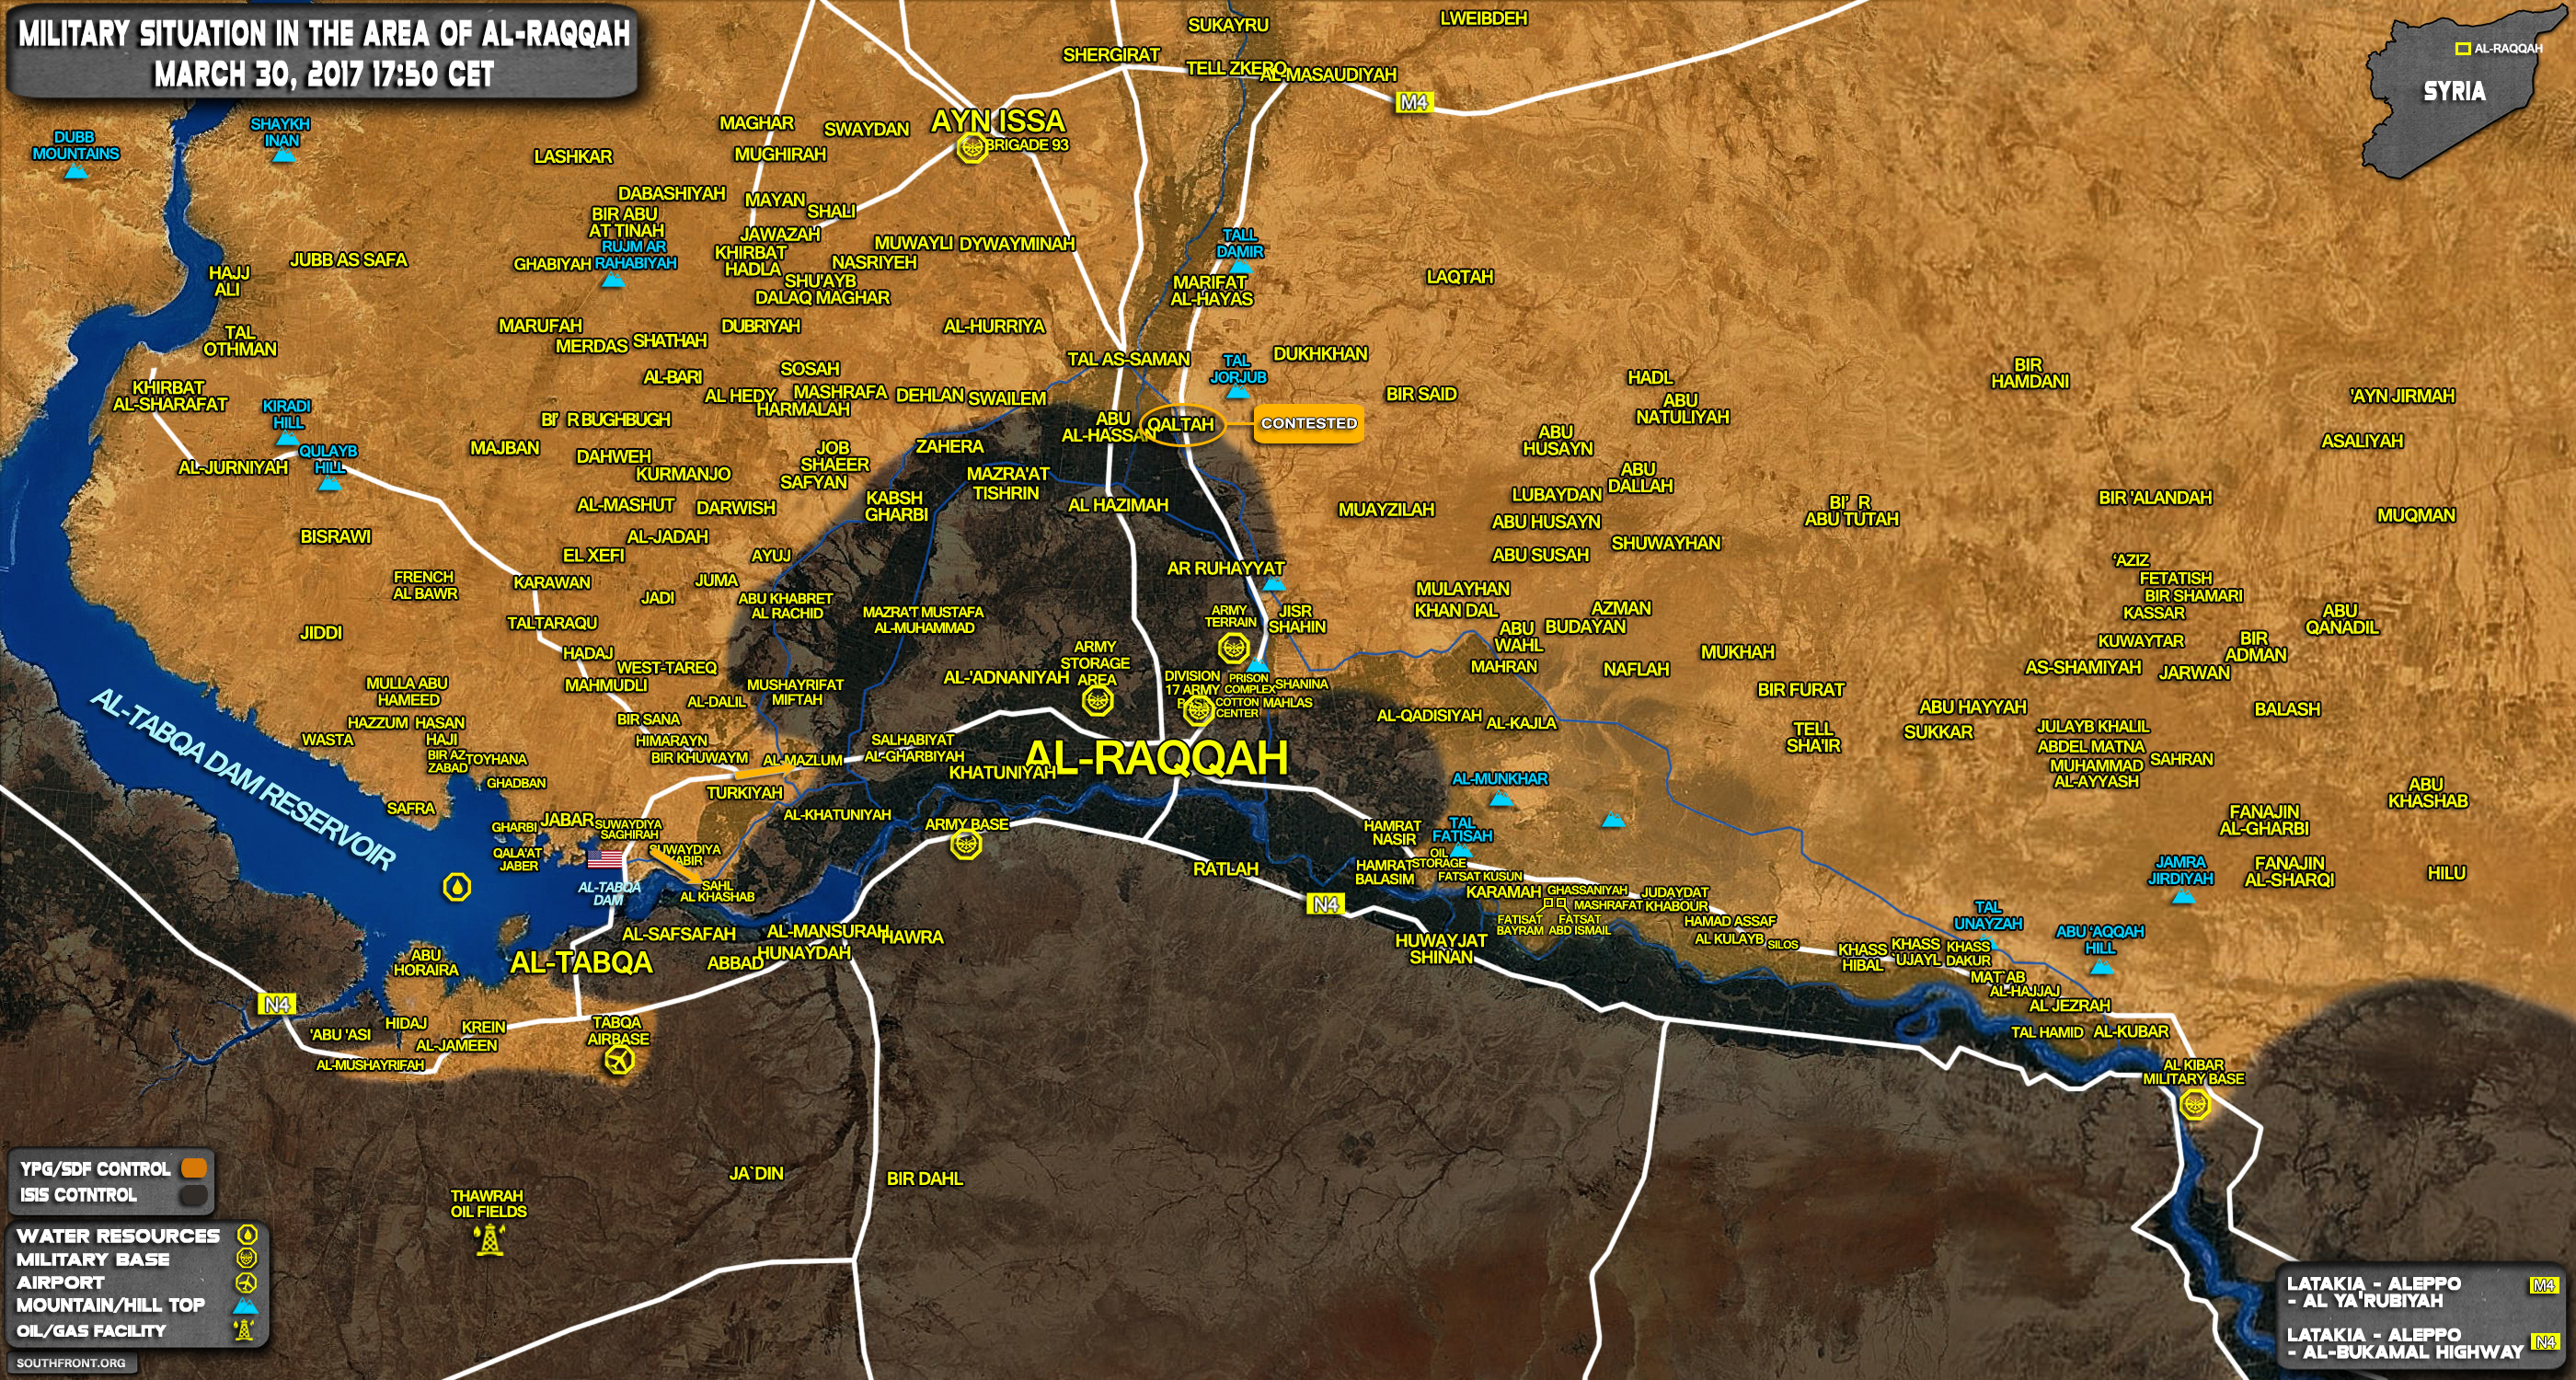 Military Situation In Area Of Raqqah On March 30, 2017 (Syria Map)